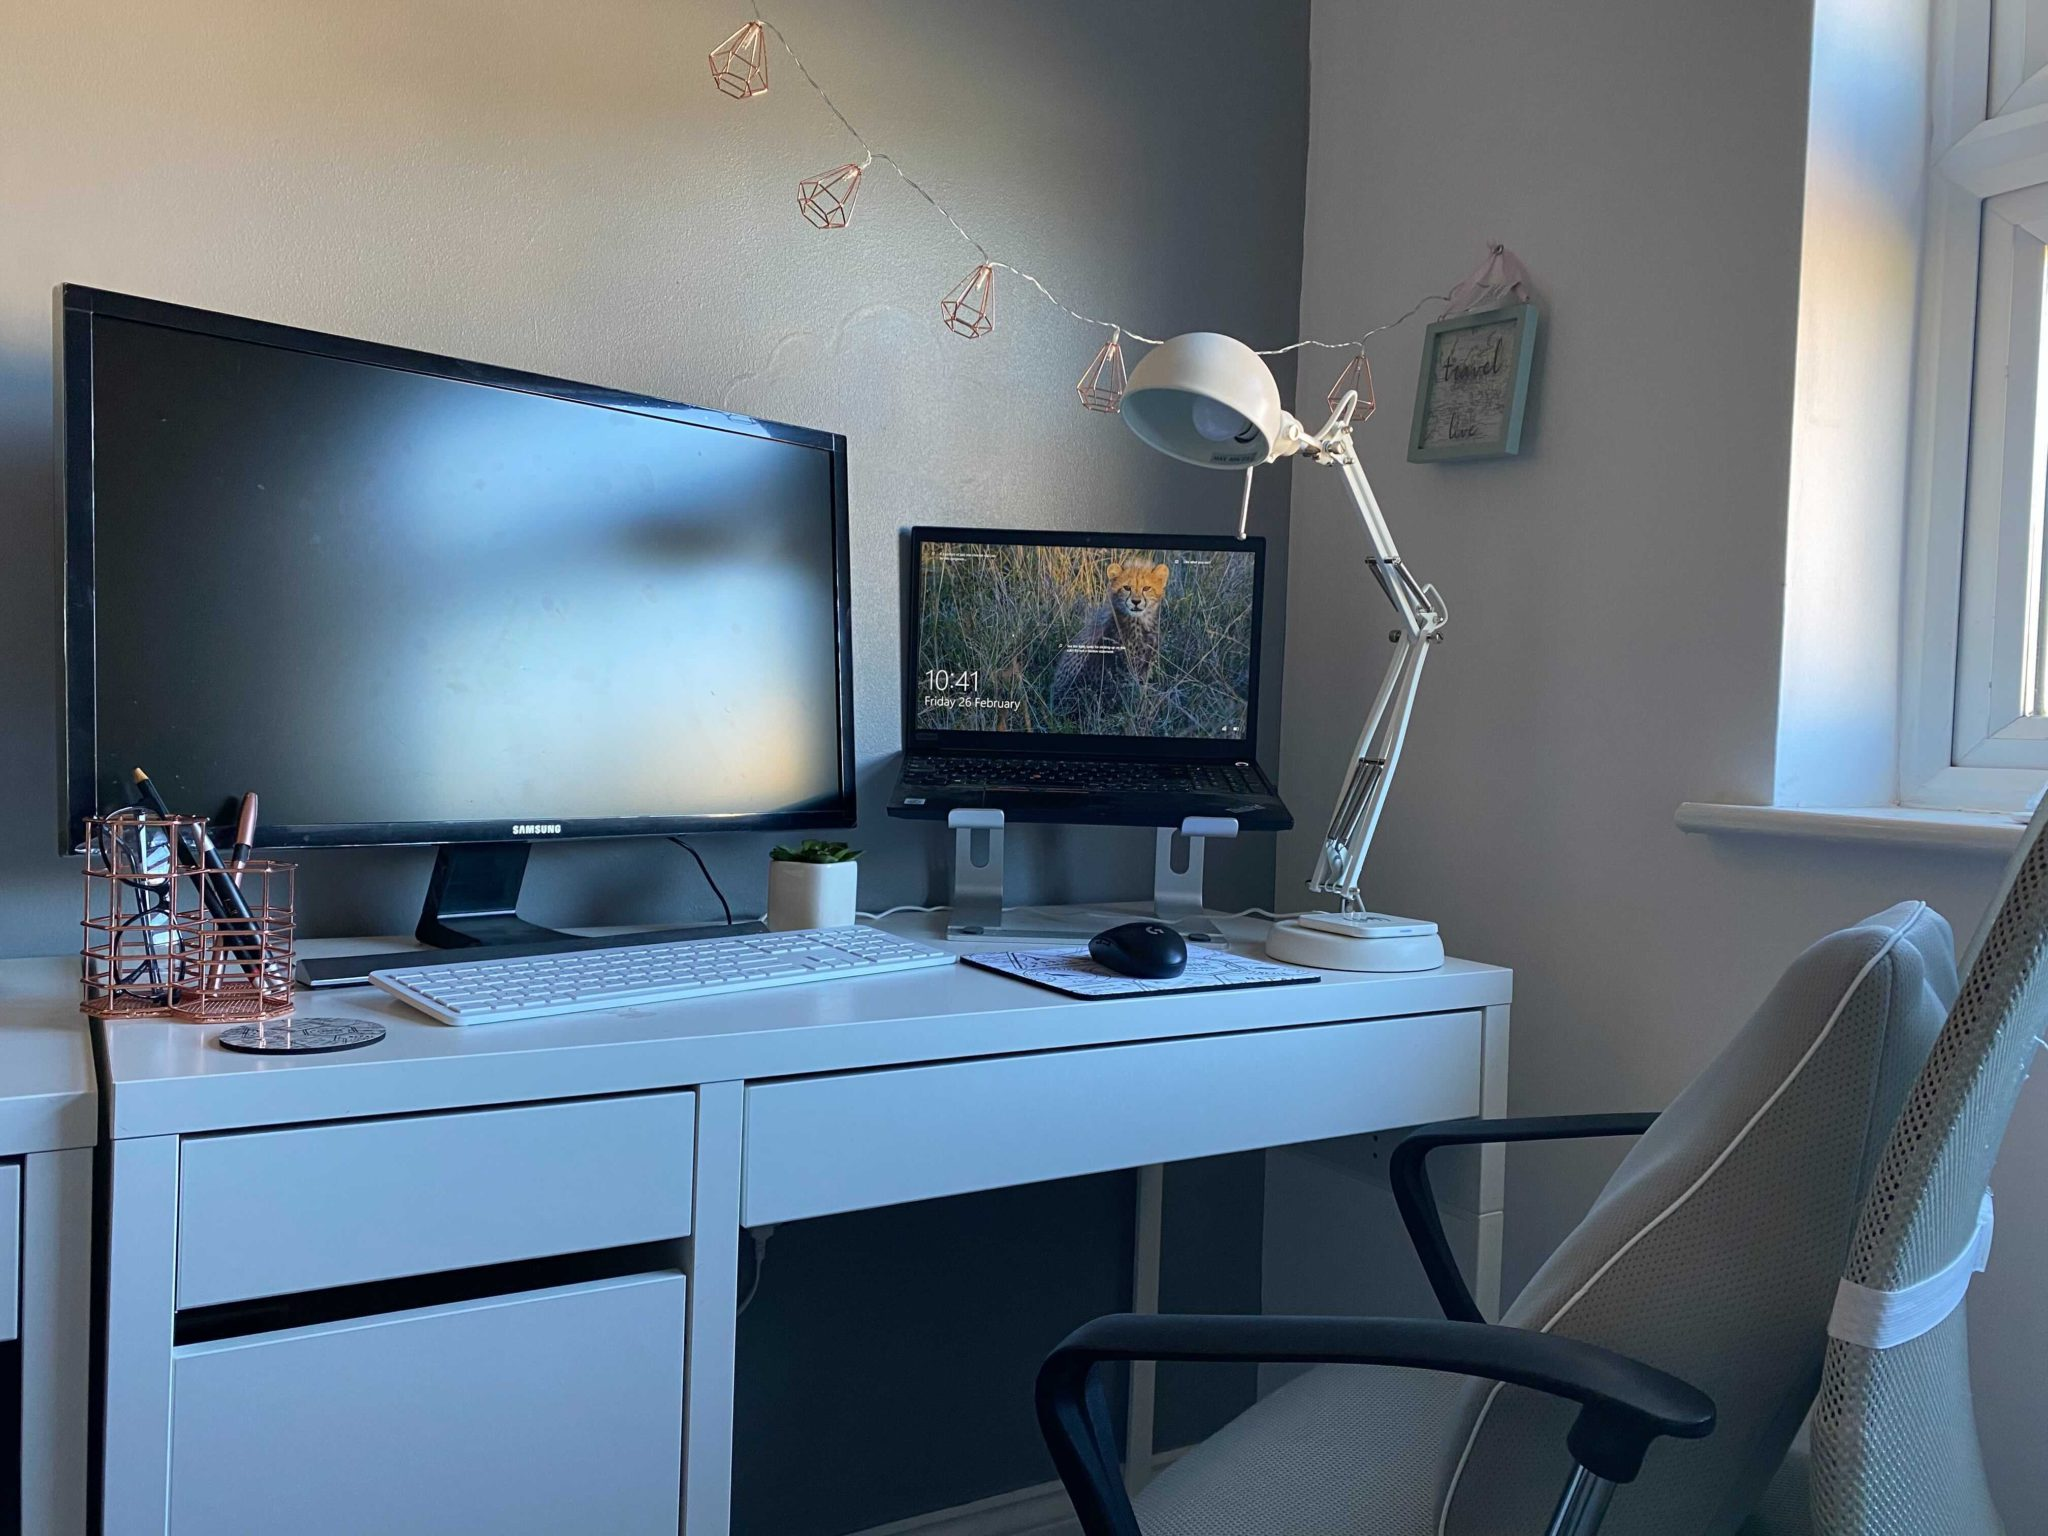 try to keep your home office set up tidy and make it your own